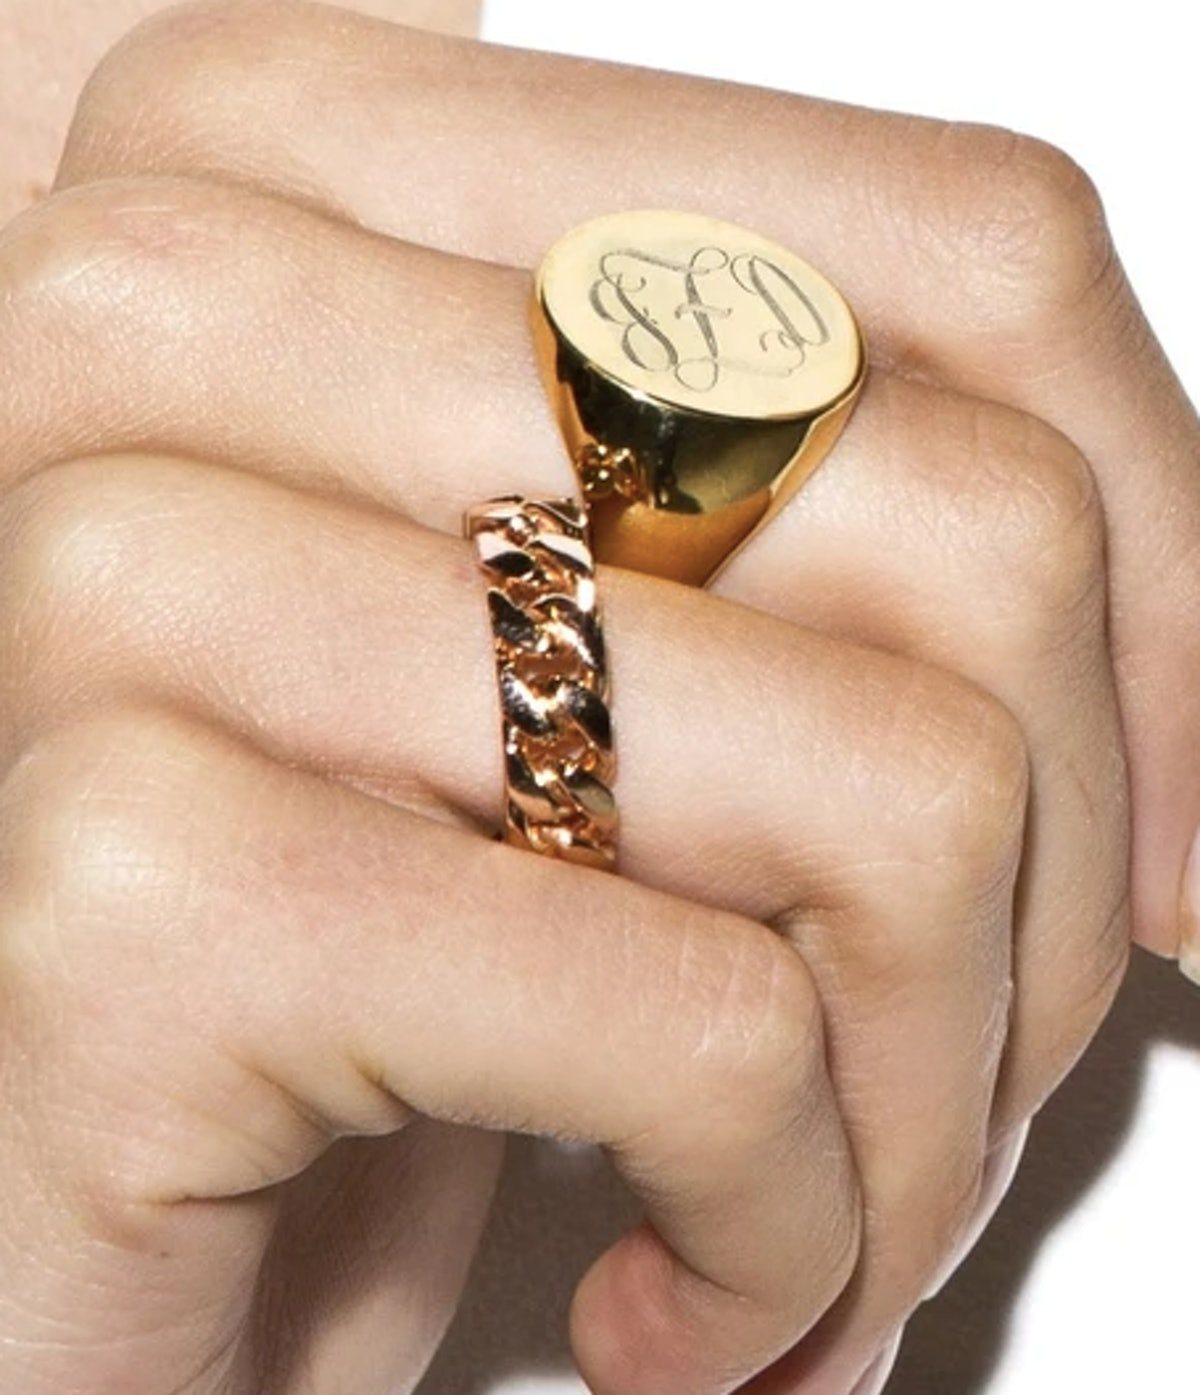 Orly engraved swirly initial oval signet ring